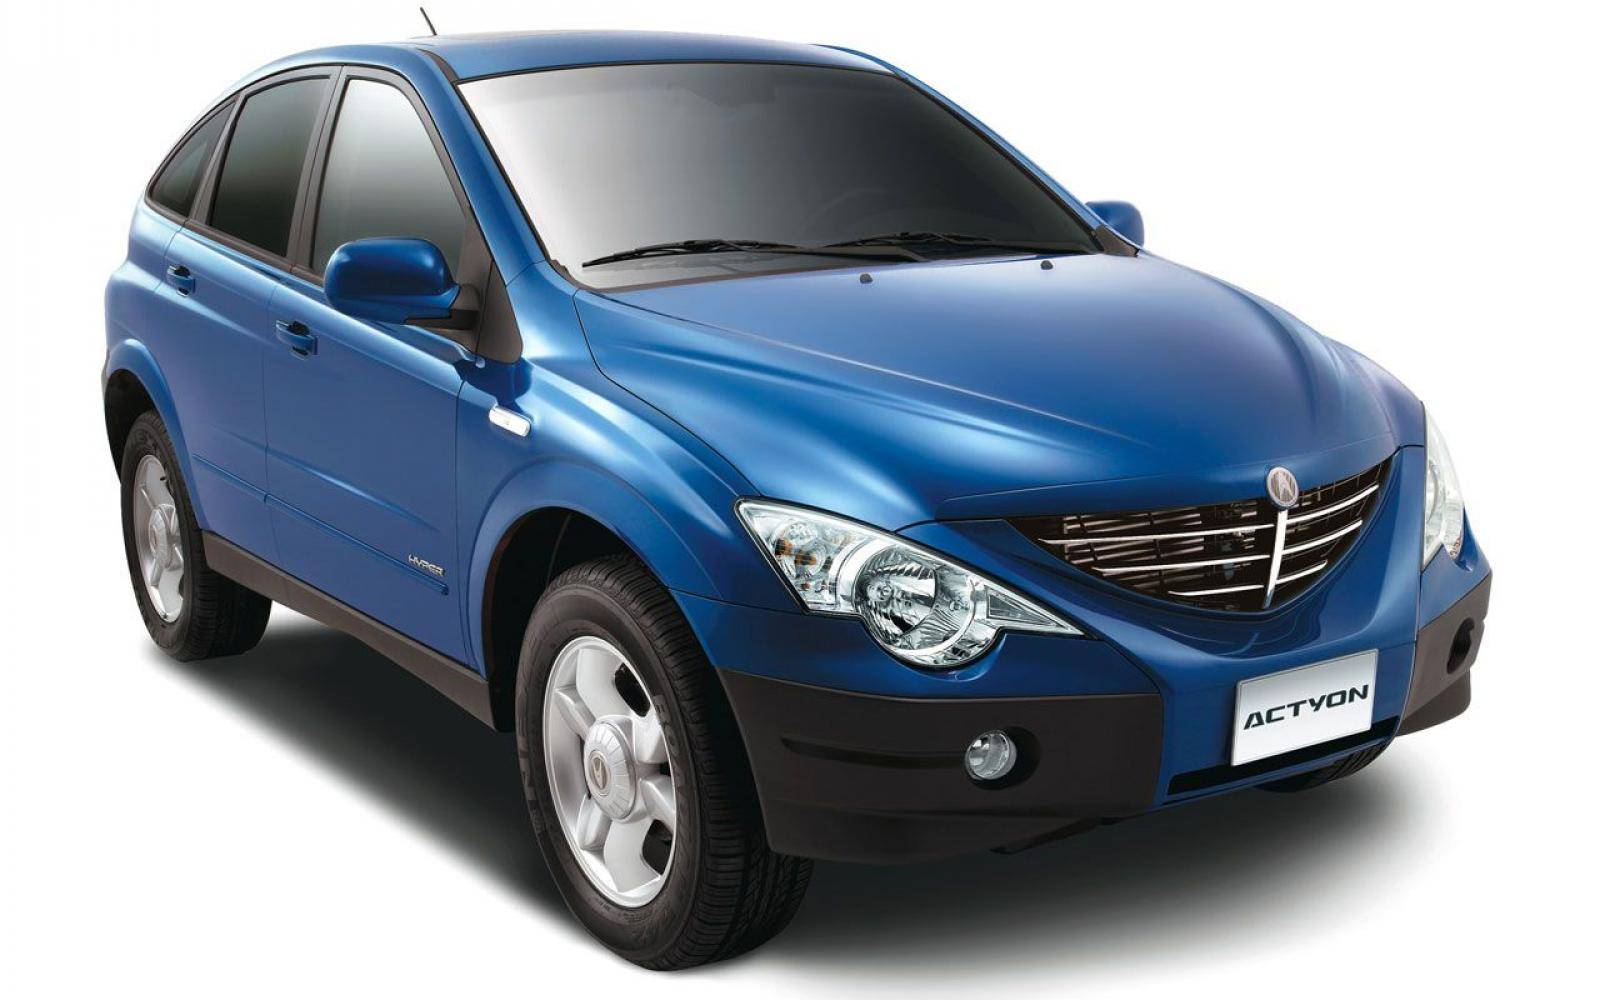 Compacte SsangYong SUV: Actyon